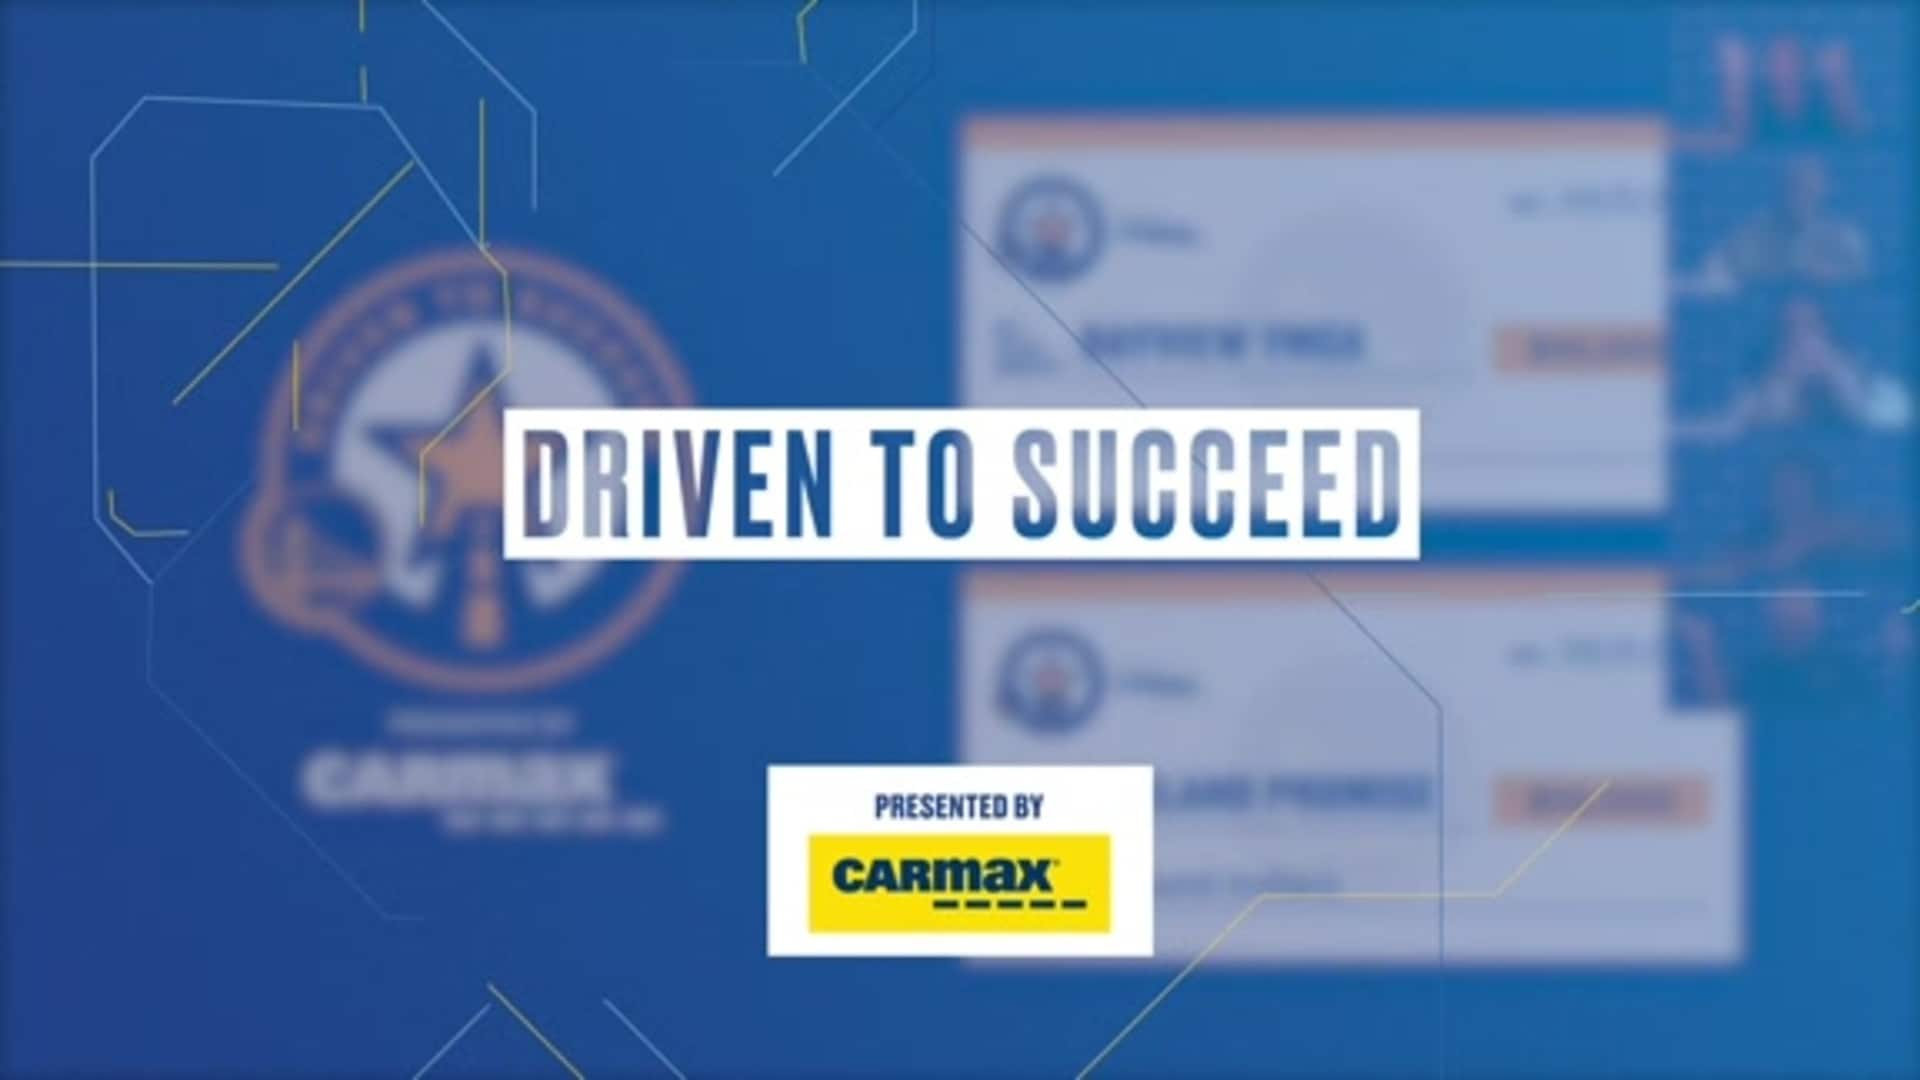 Driven to Succeed, presented by CarMax